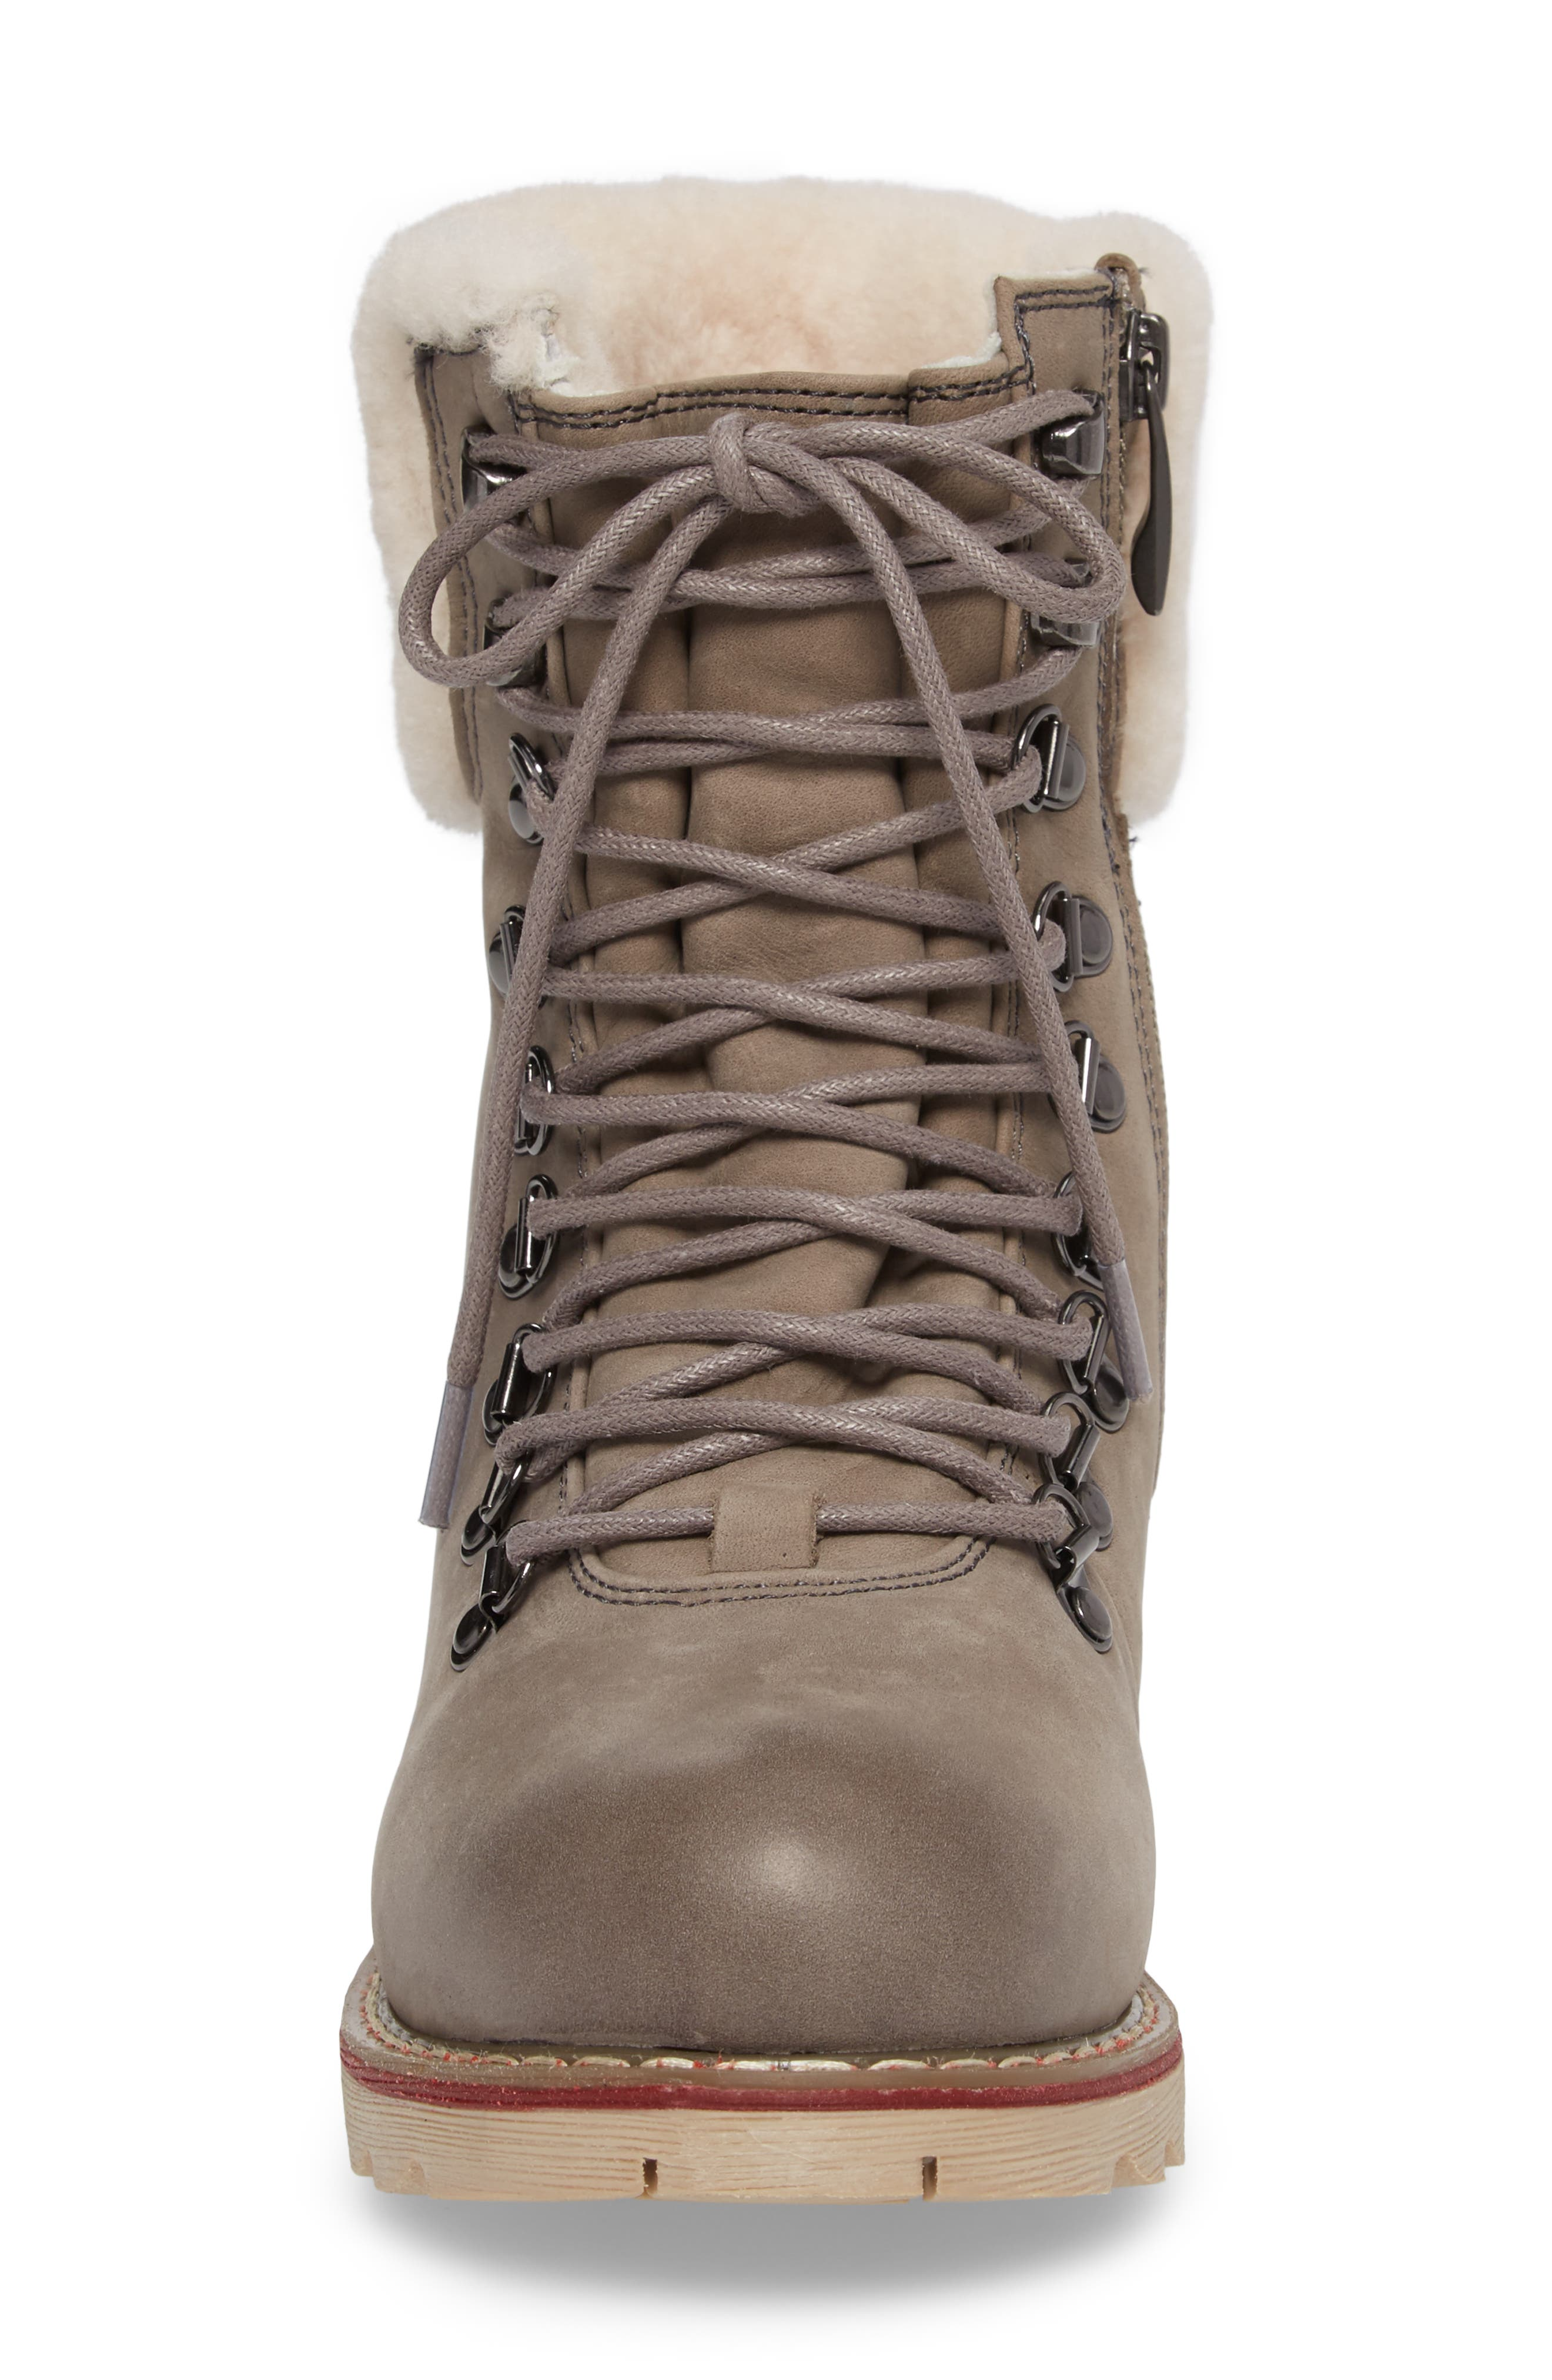 Lethbridge Waterproof Snow Boot with Genuine Shearling Cuff,                             Alternate thumbnail 14, color,